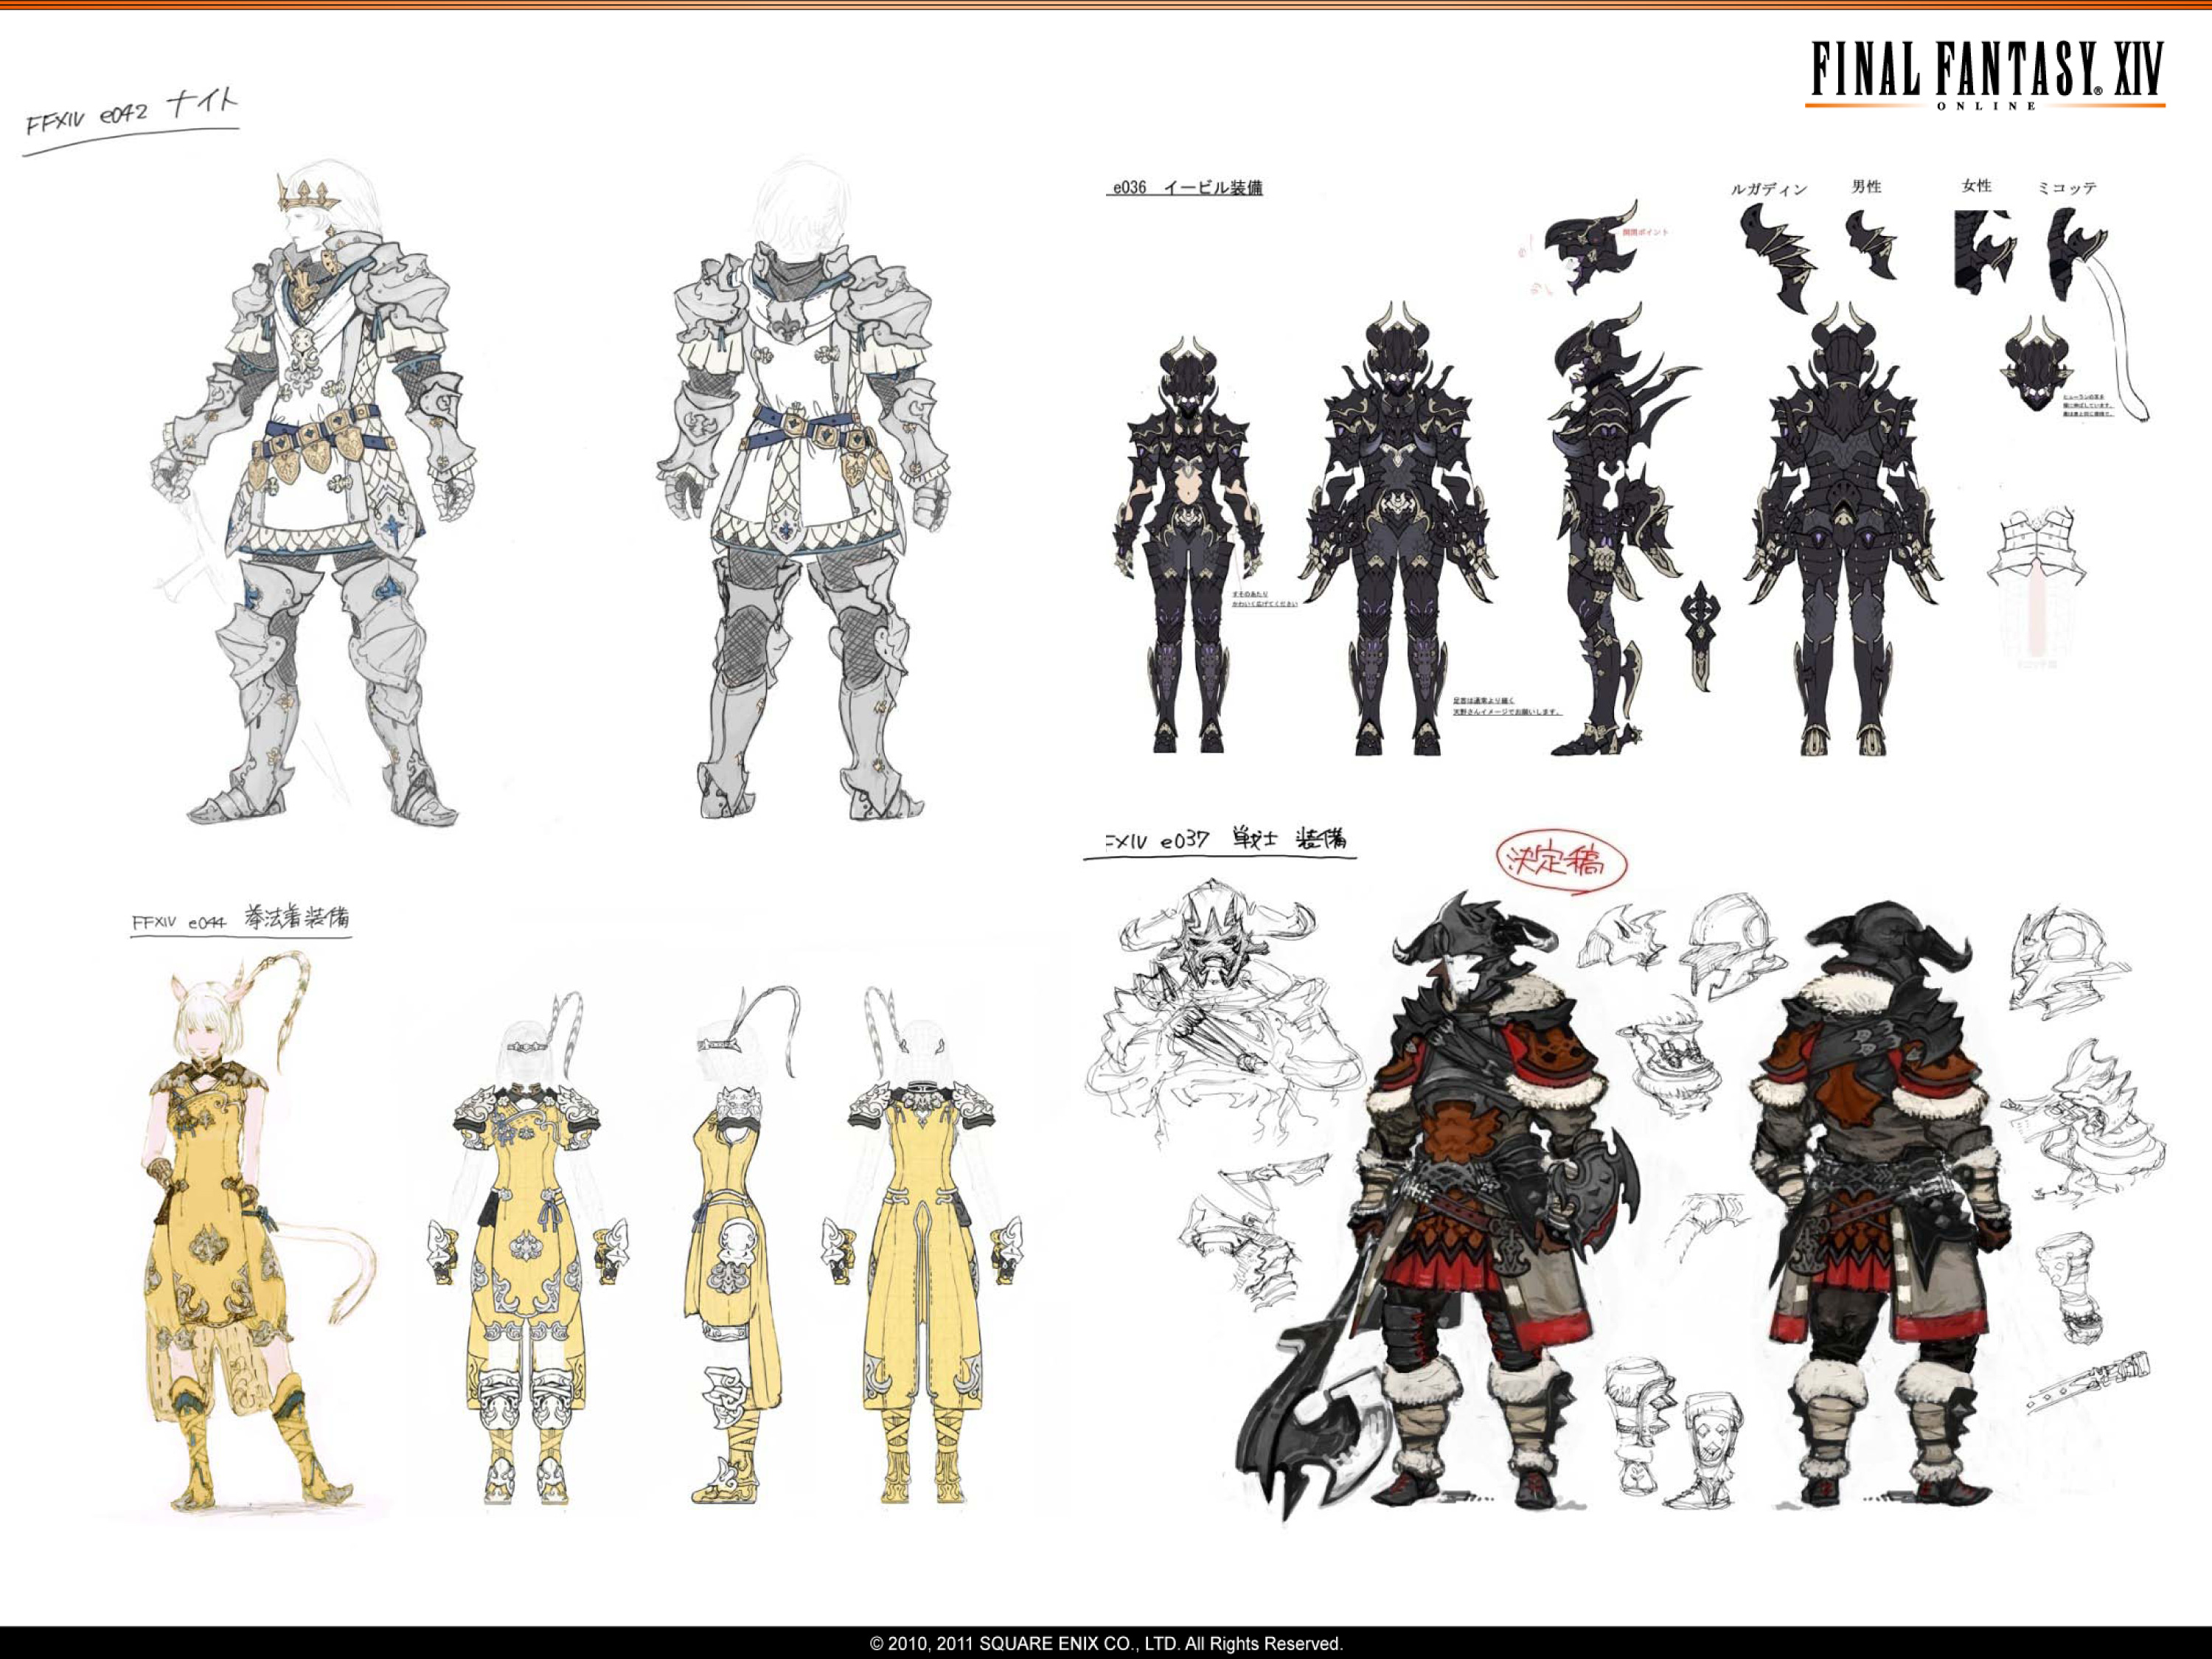 Anime Character Design Jobs : Final fantasy character design pinterest